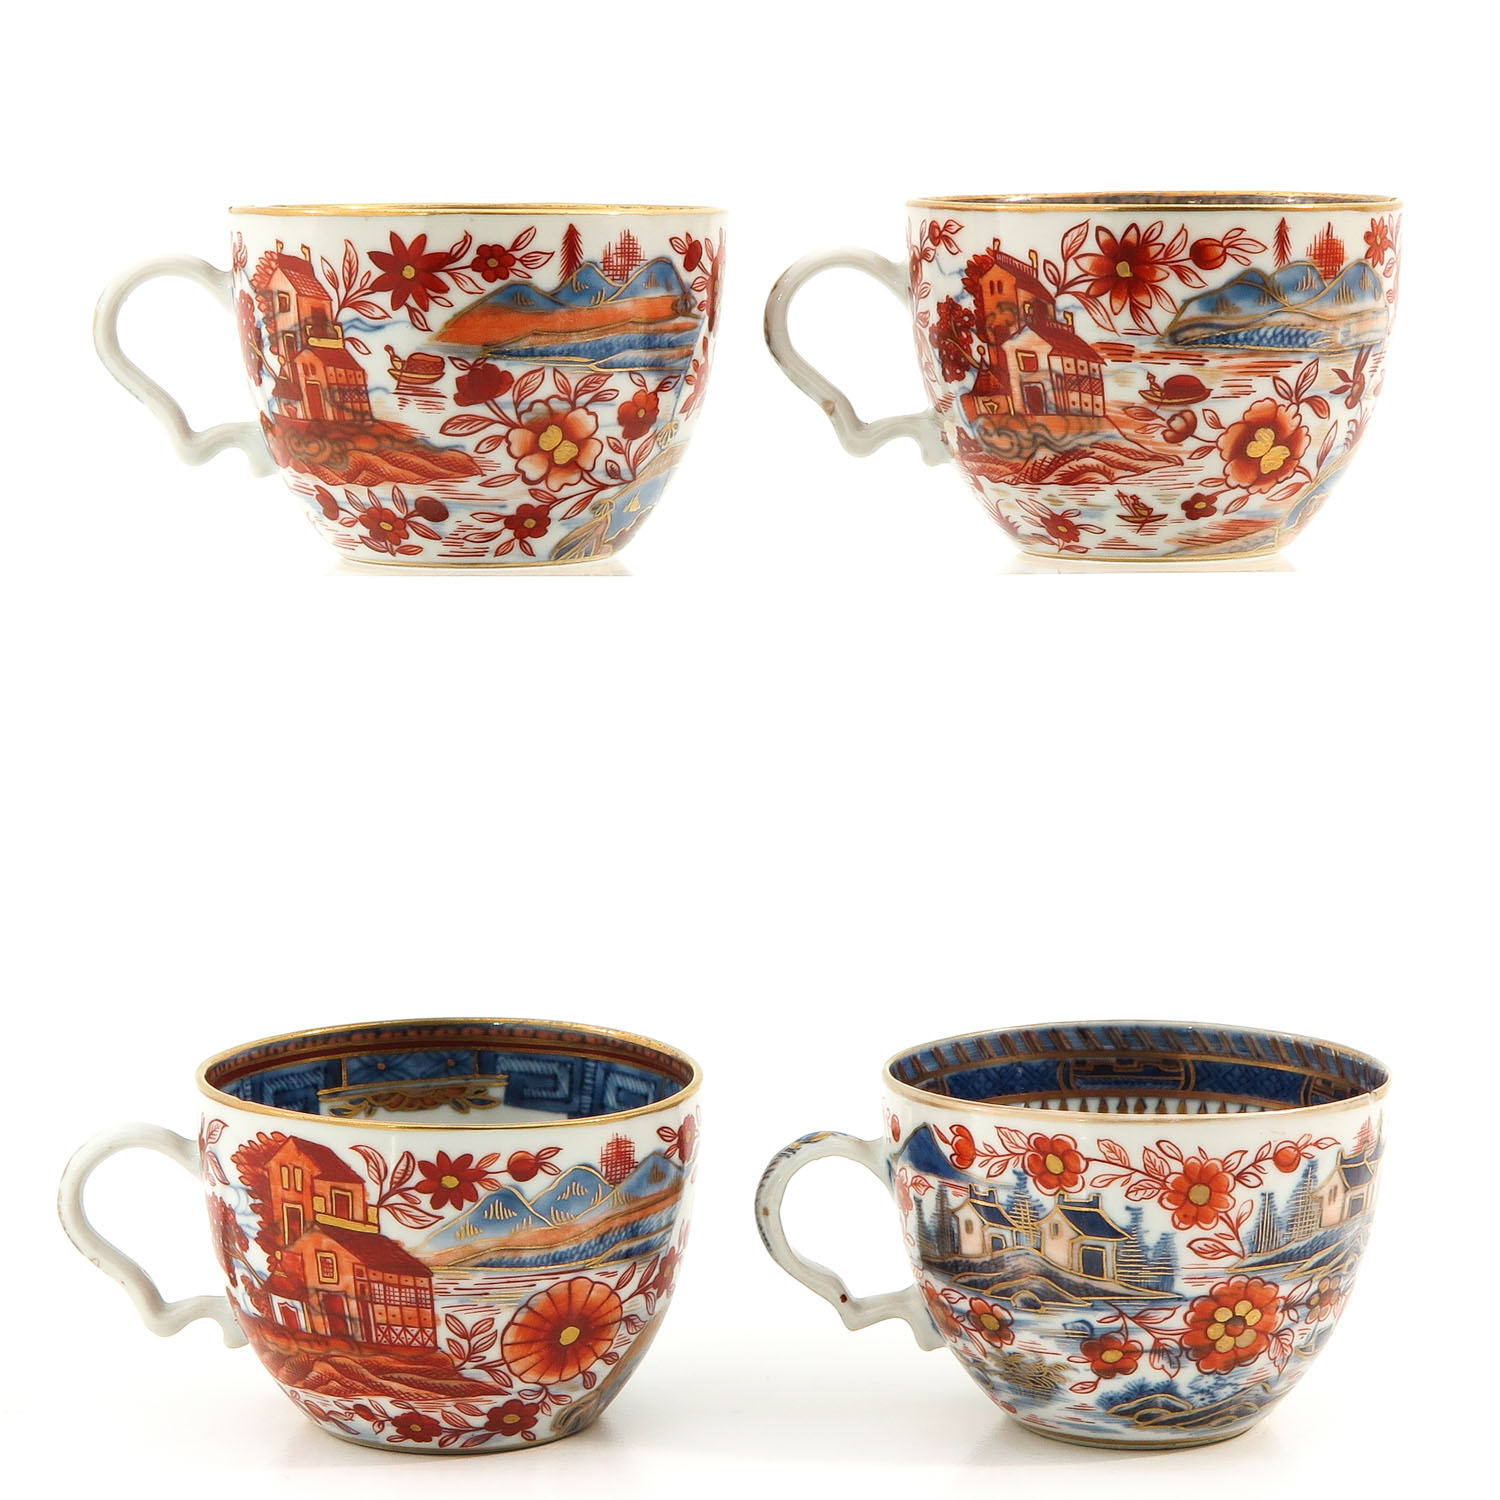 4 Imari Cups and Saucers - Image 3 of 10